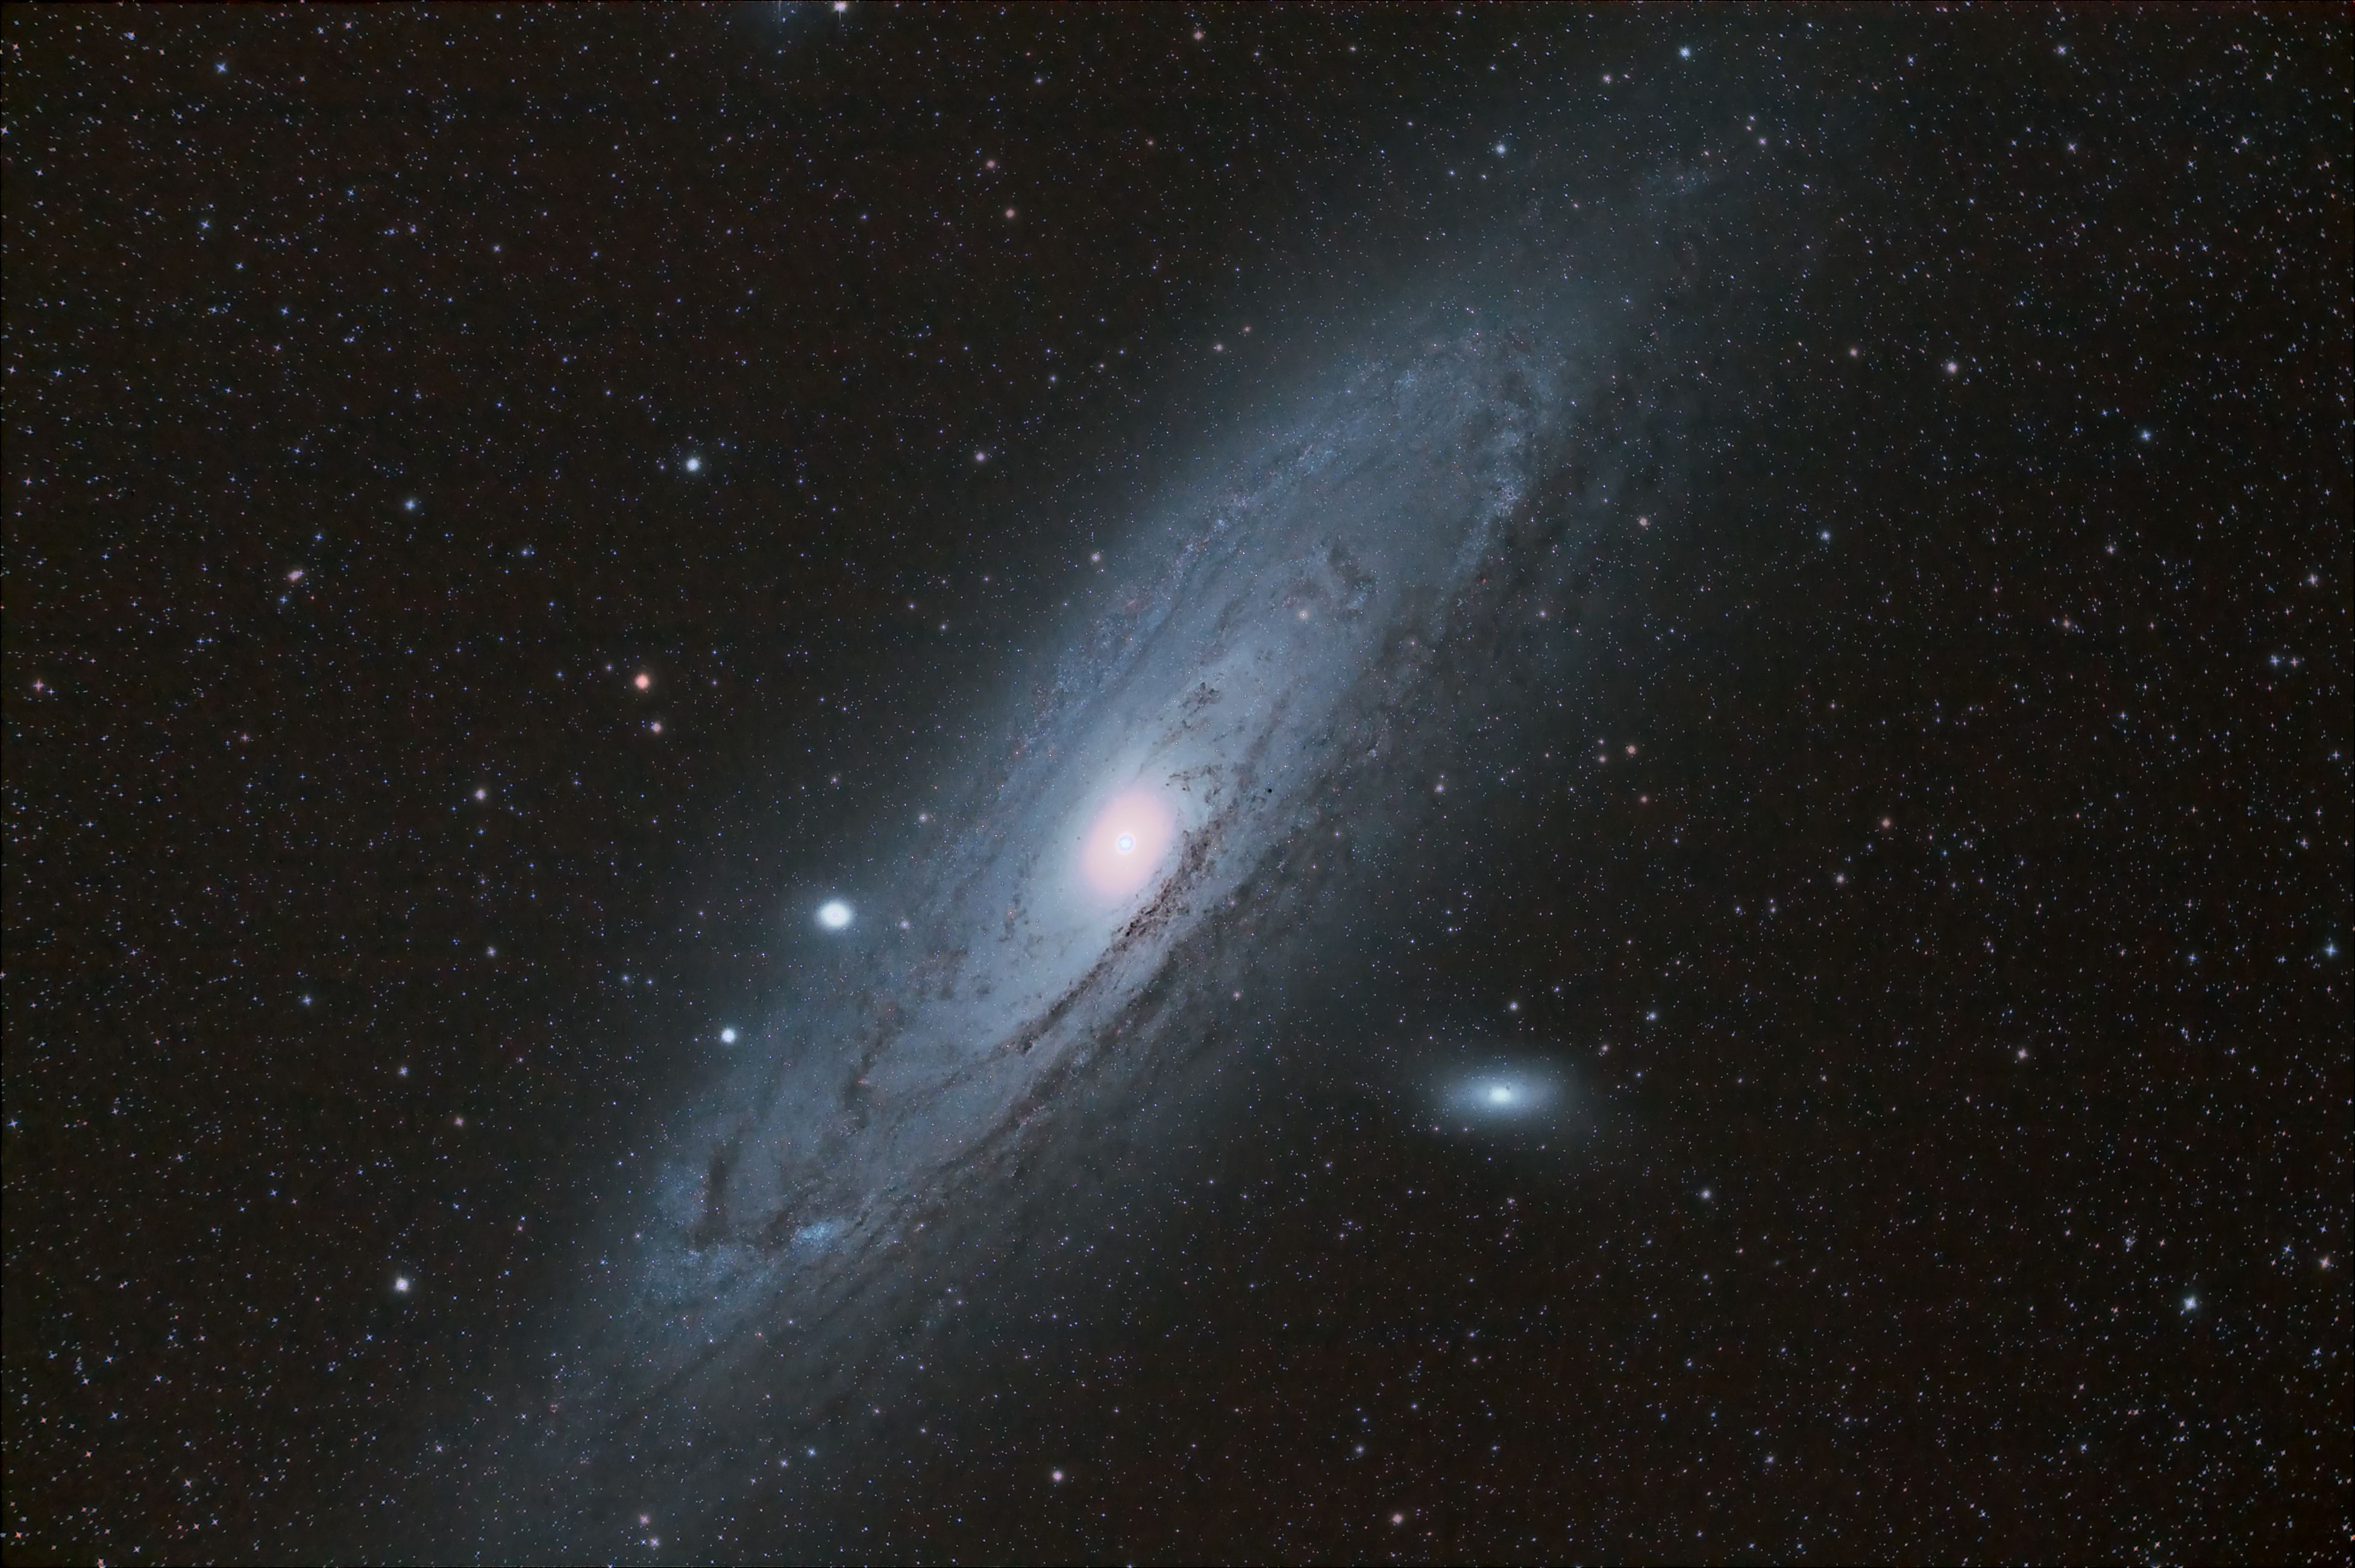 M31 - The Andromeda Galaxy